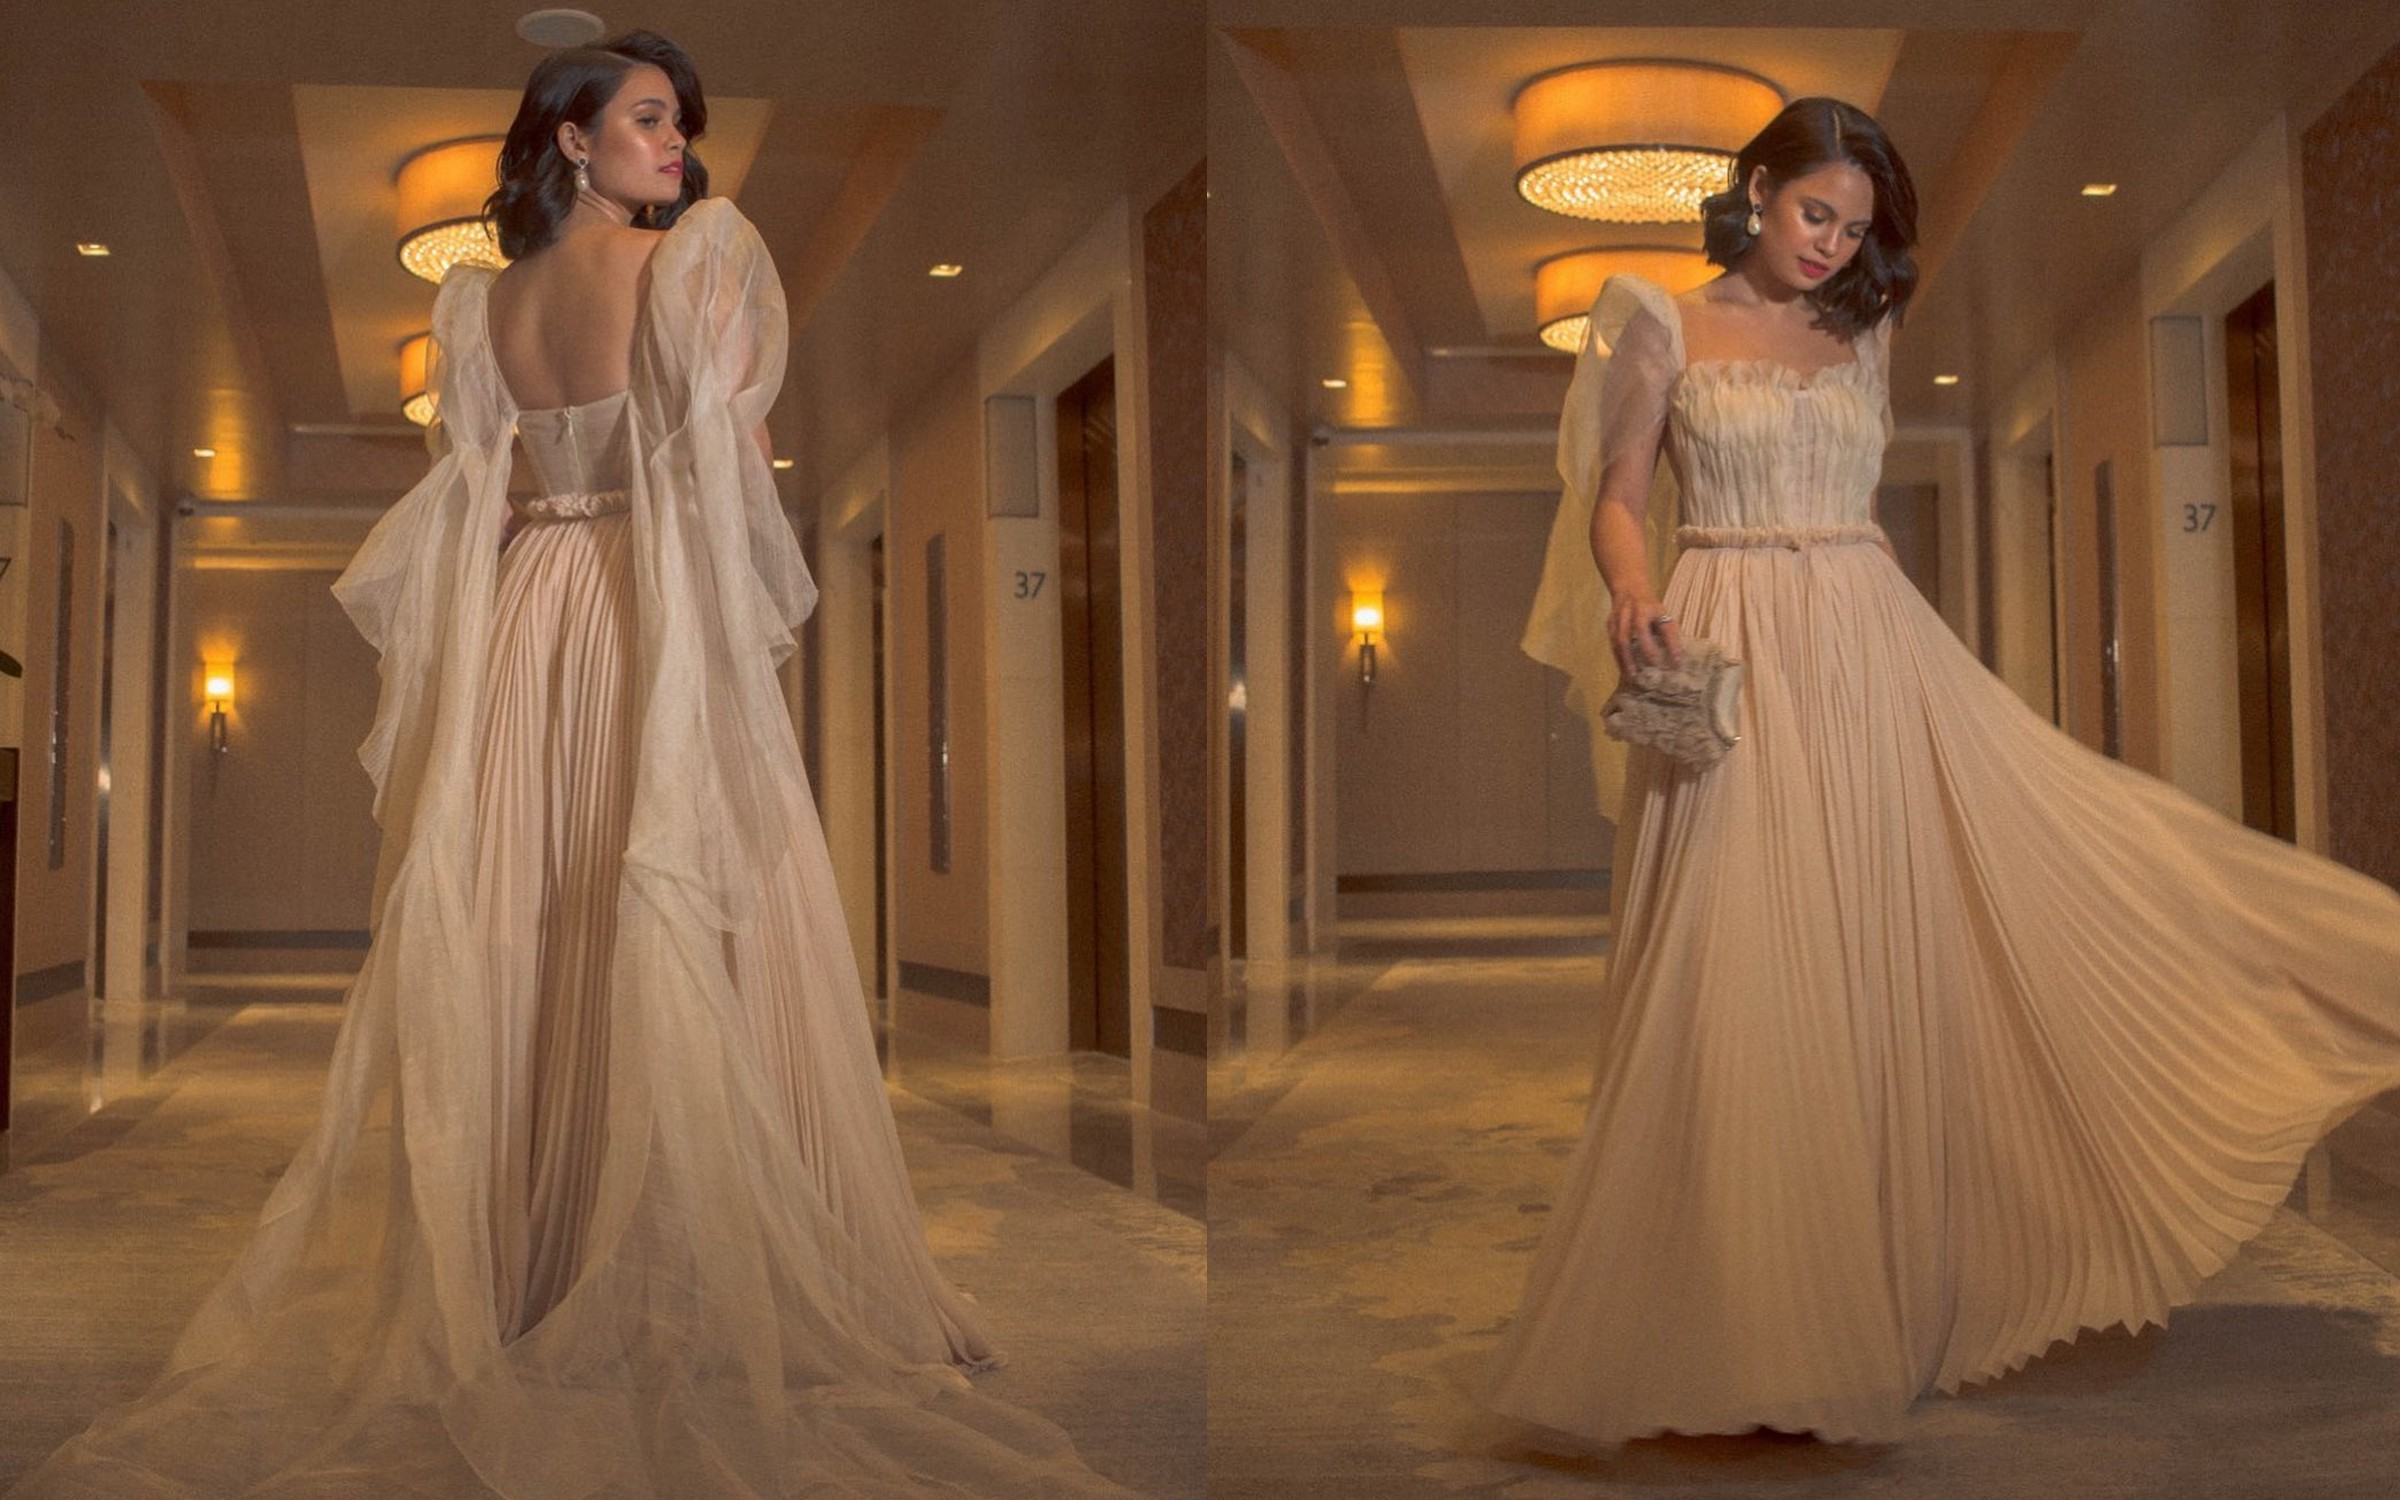 8 Looks That Served Us During The 2019 Abs Cbn Ball By Kc Castillo Thread By Zalora 1 Philippines Online Fashion Community,Country Wedding Rustic Mother Of The Bride Dresses